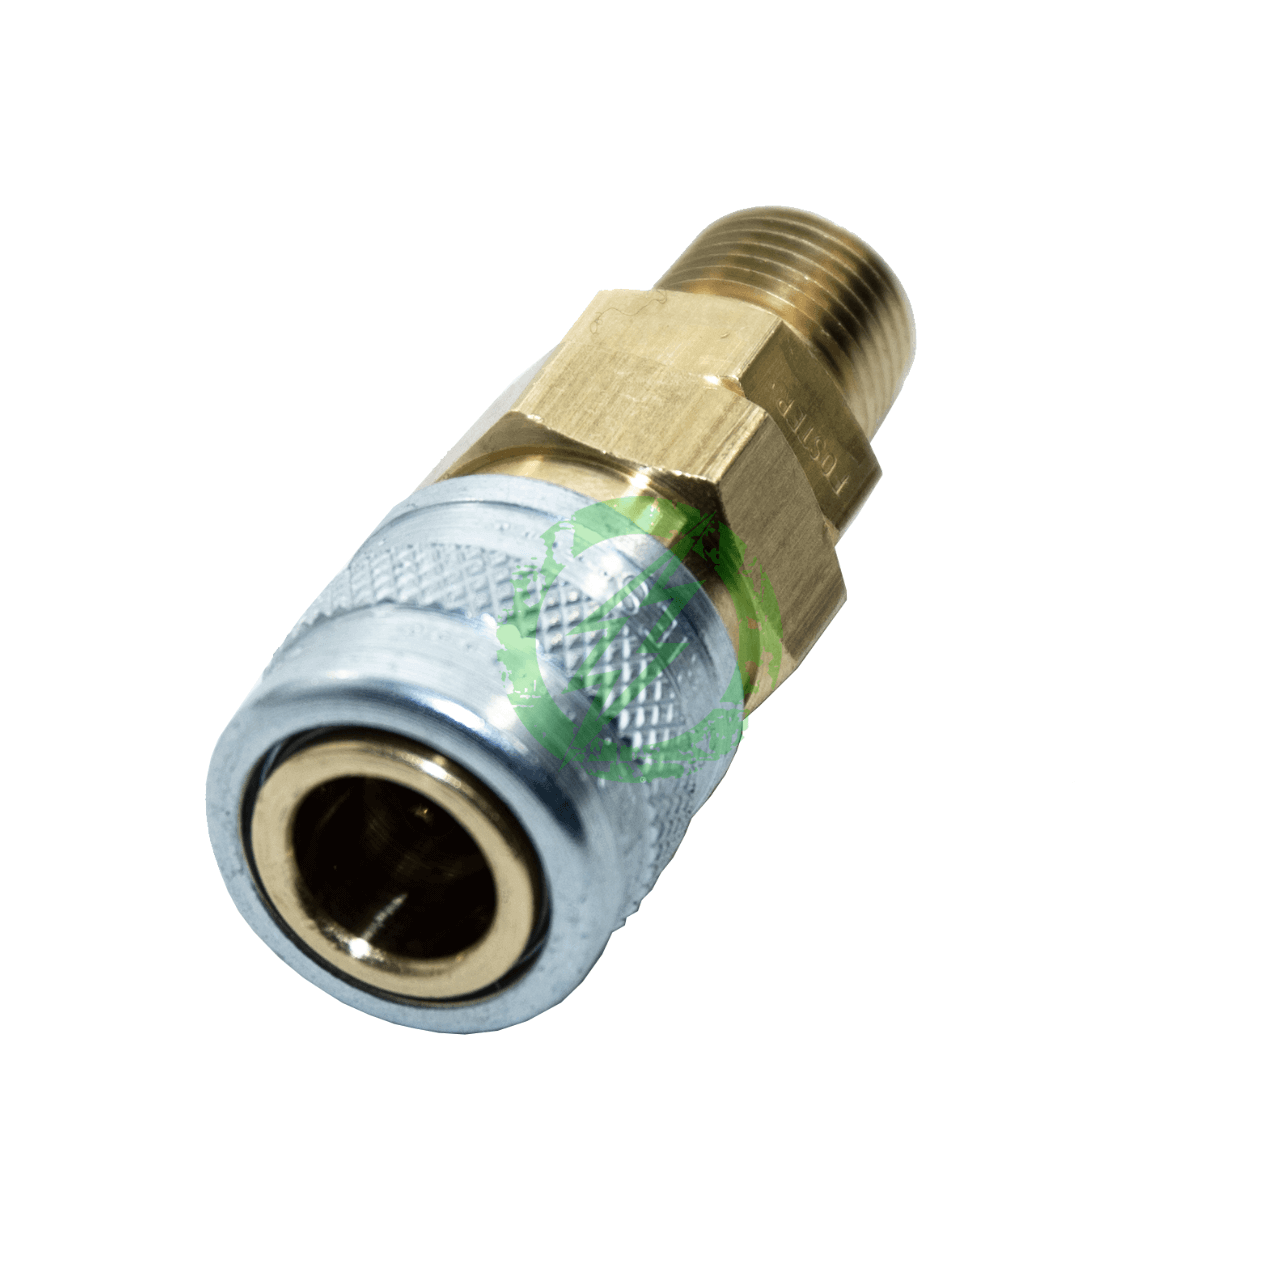 Amped Line Foster Quick Disconnect Regulator Adapter